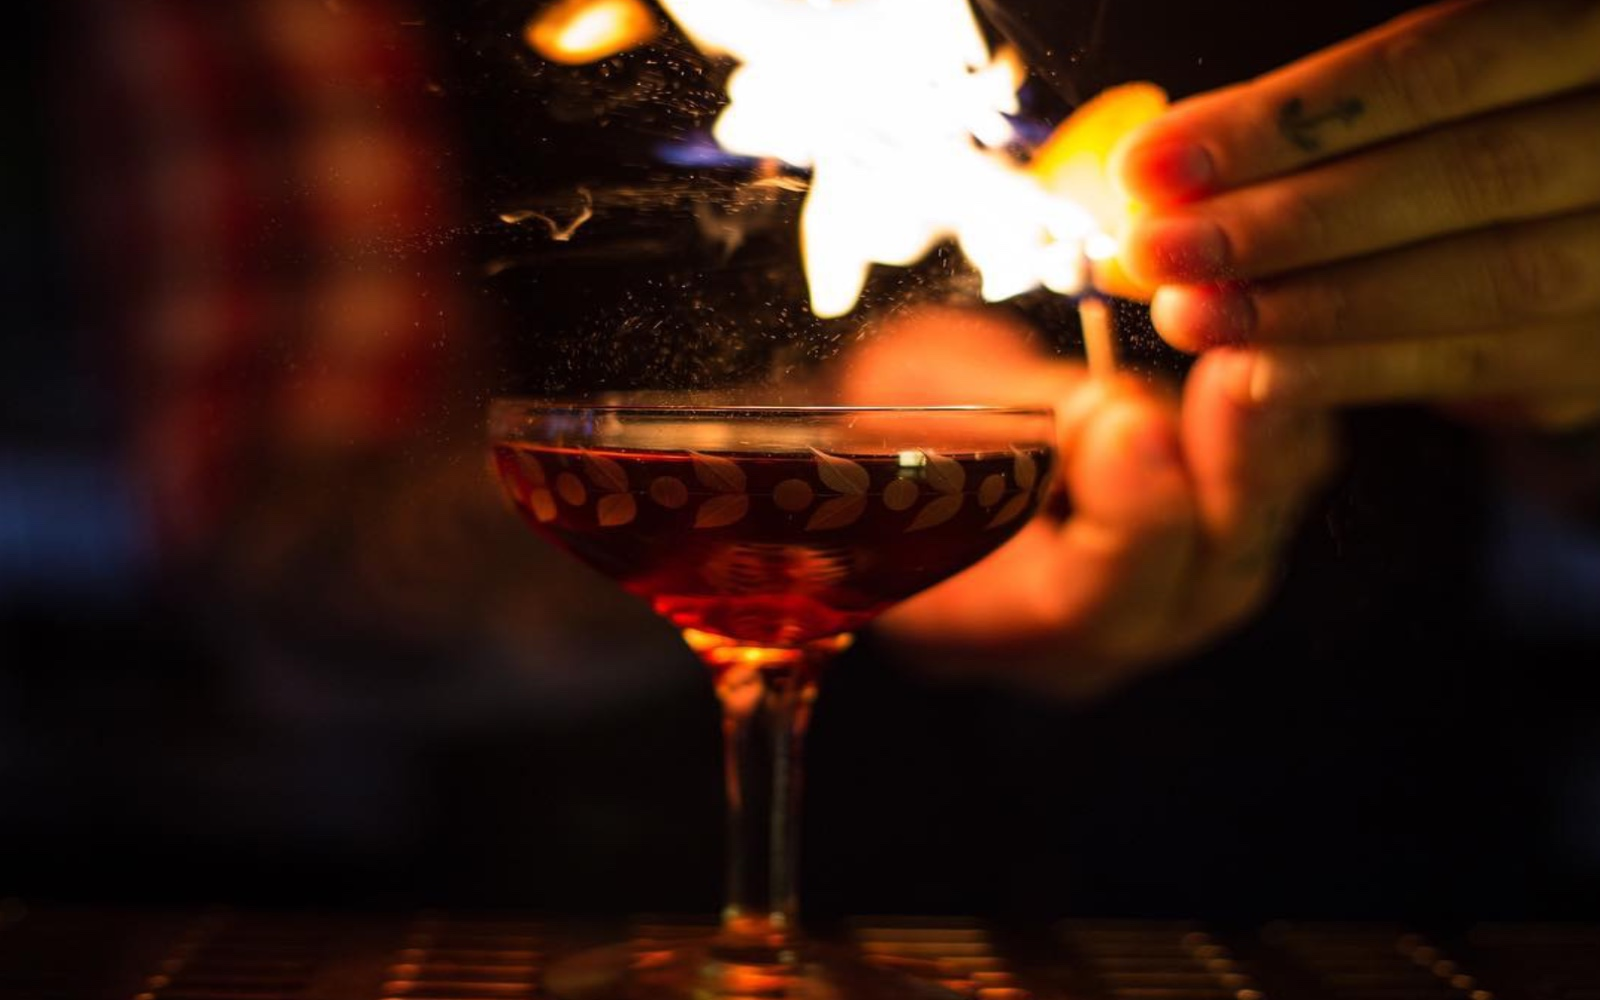 Fire alight above cocktail at the Keefer Bar, Vancouver